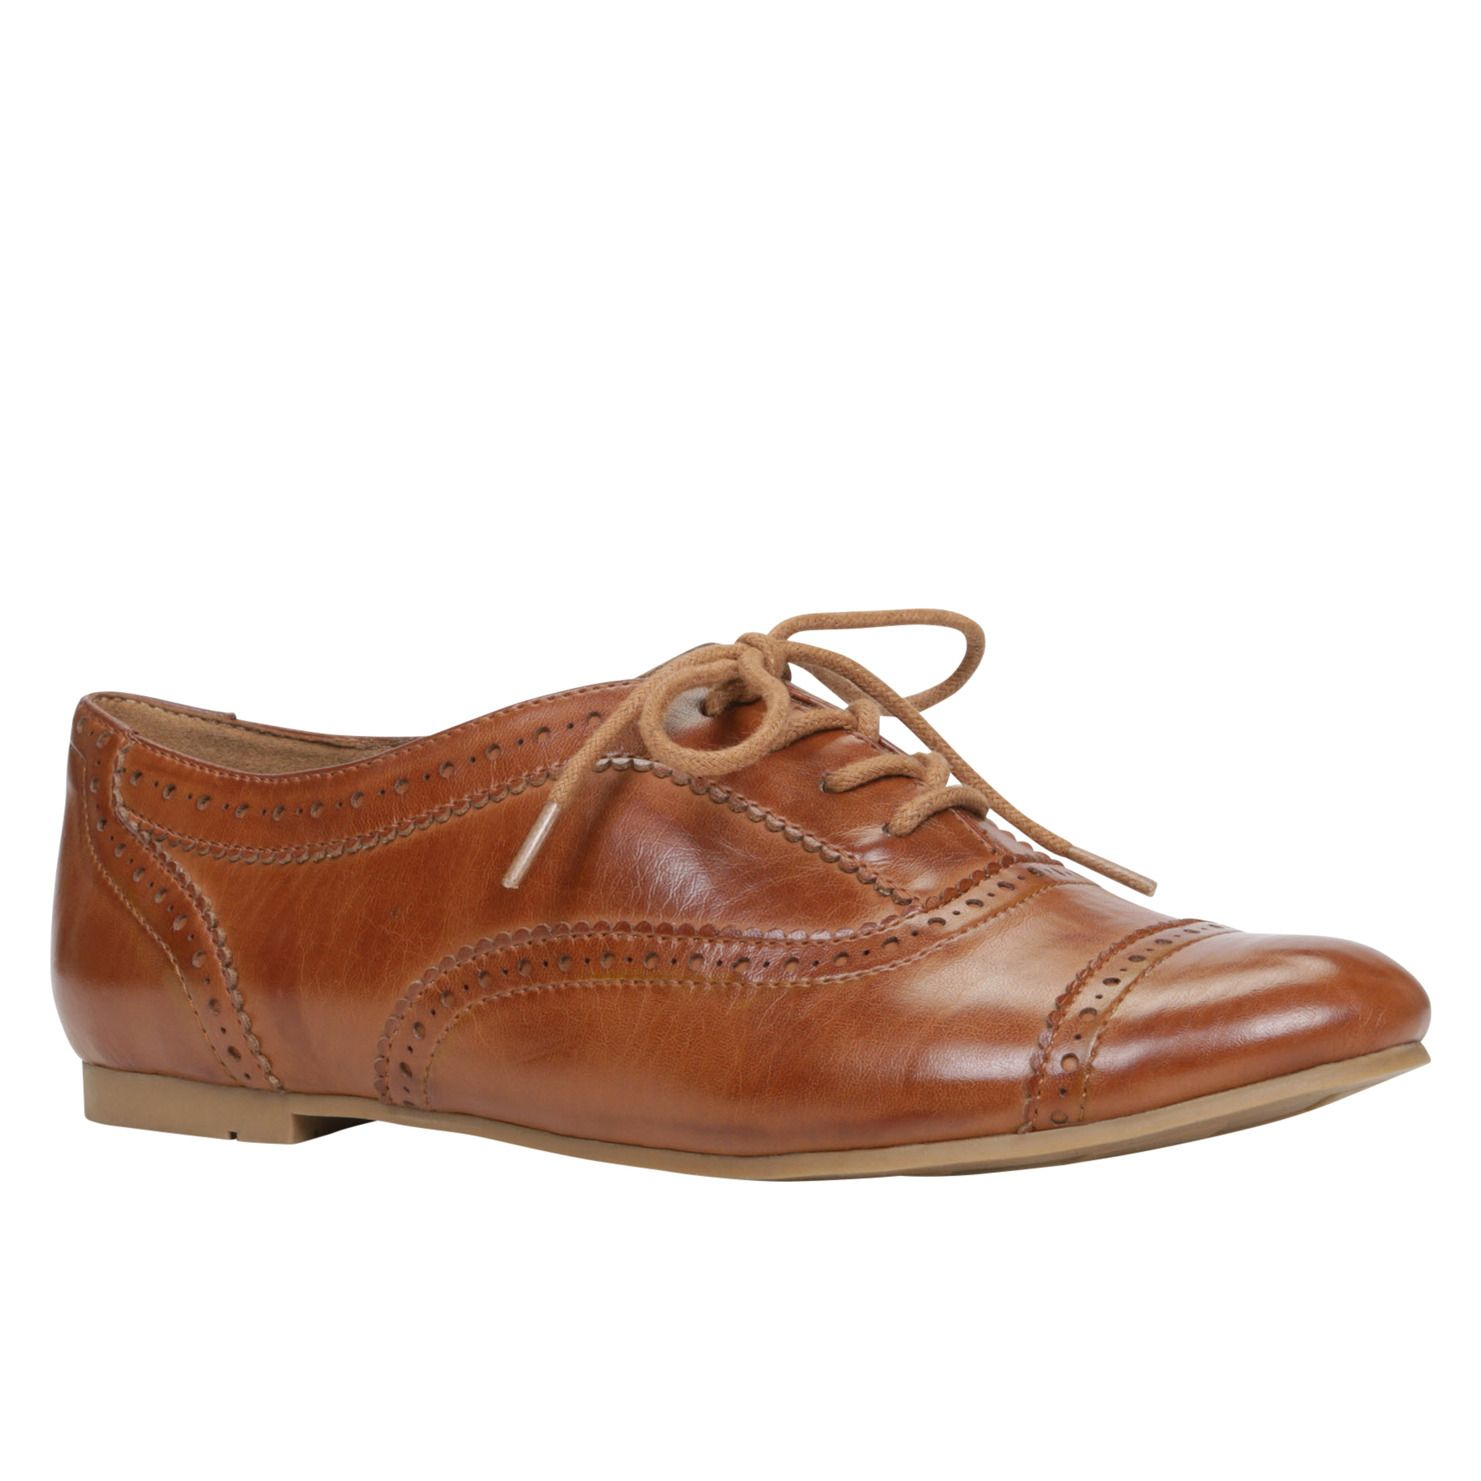 aldo shoes oxford women outfitters for sale